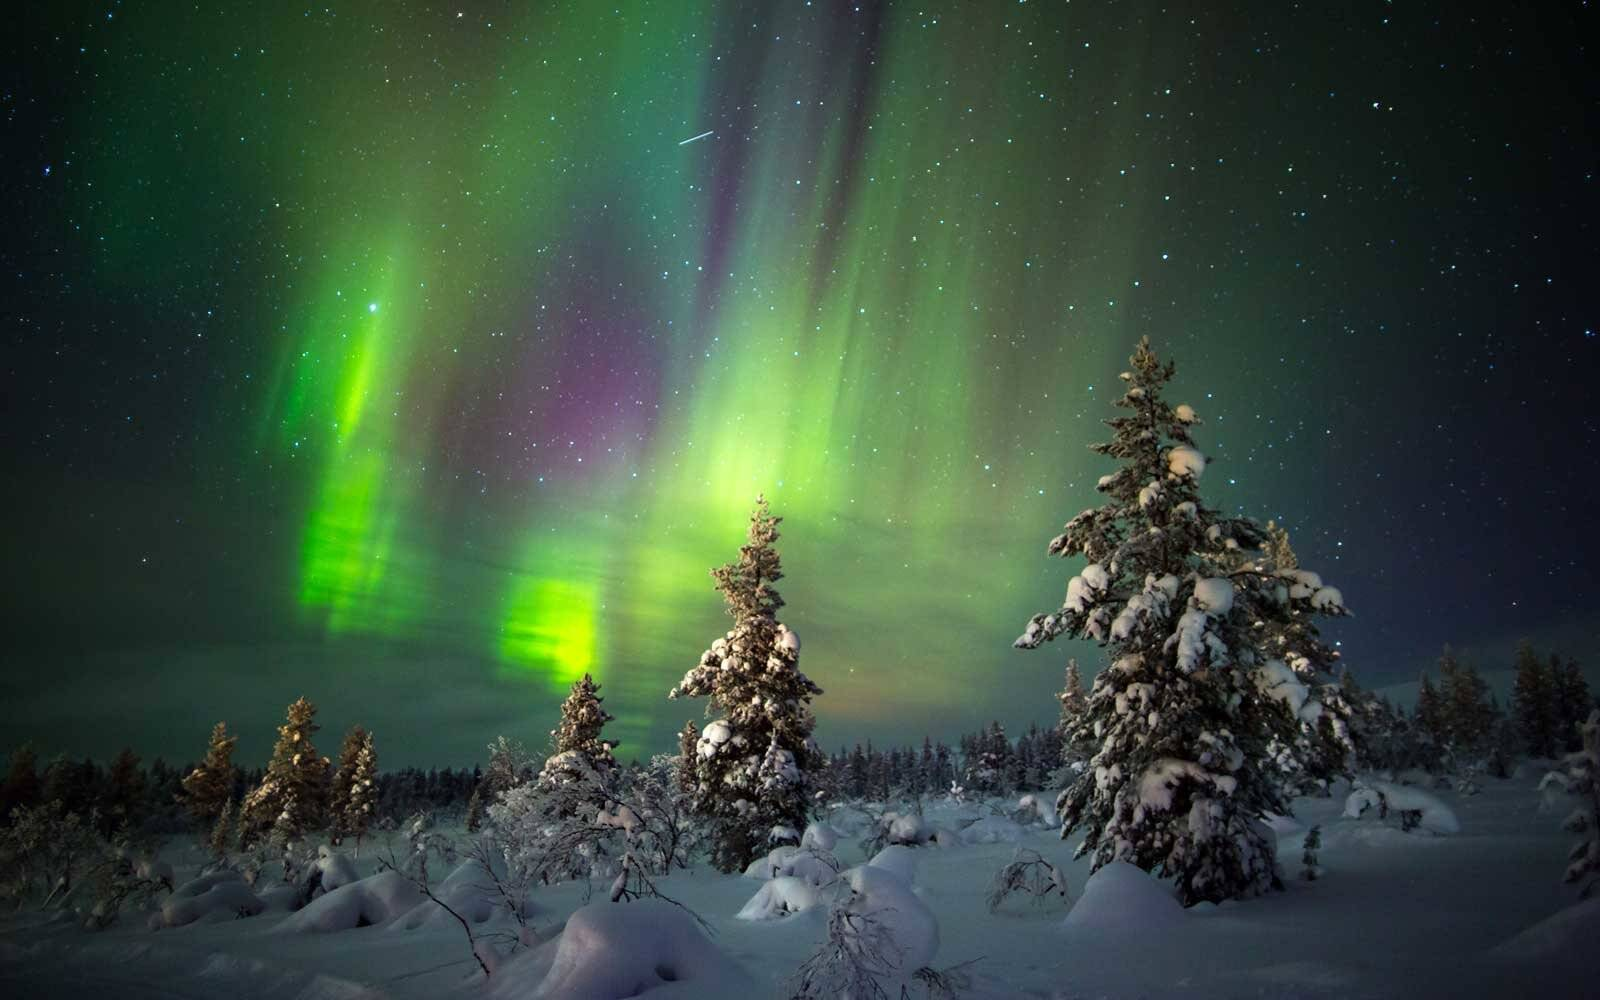 Aurora borealis over trees in Saariselka, in Lapland, Finland.